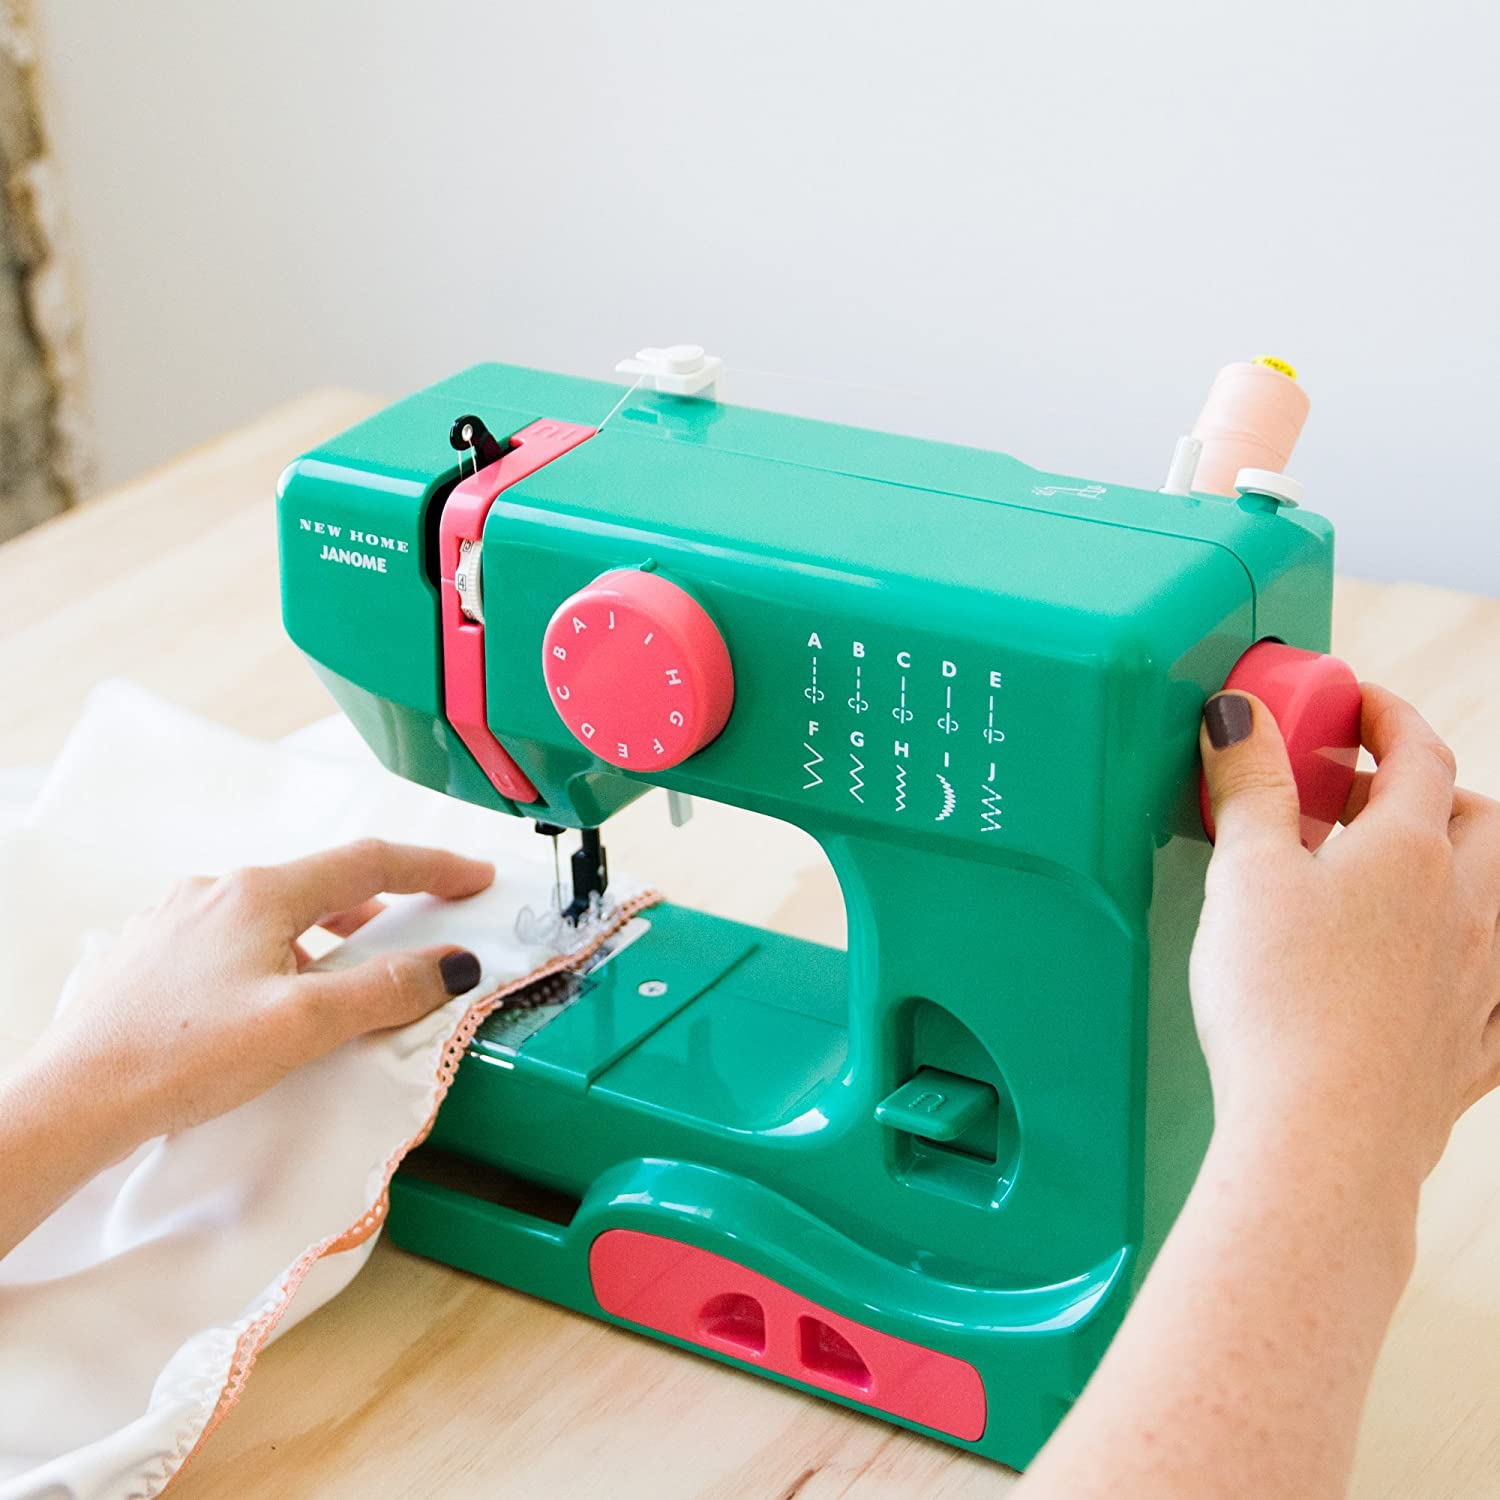 10-Stitch Portable Compact Sewing Machine with Free Arm only 5 pounds Easy-to-Use Janome Graceful Gray Basic